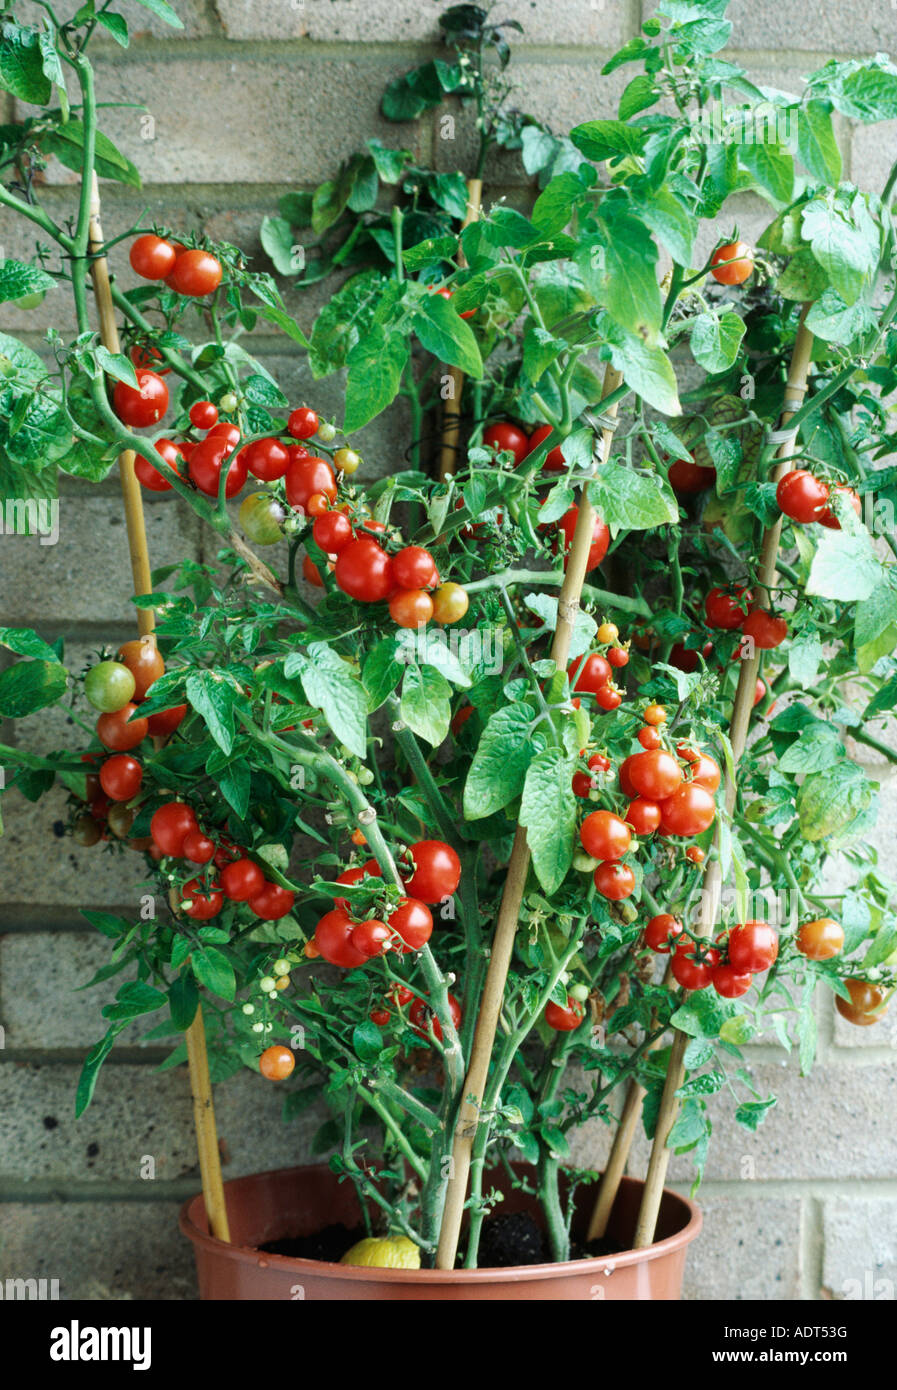 Grow cherry tomatoes in a pot